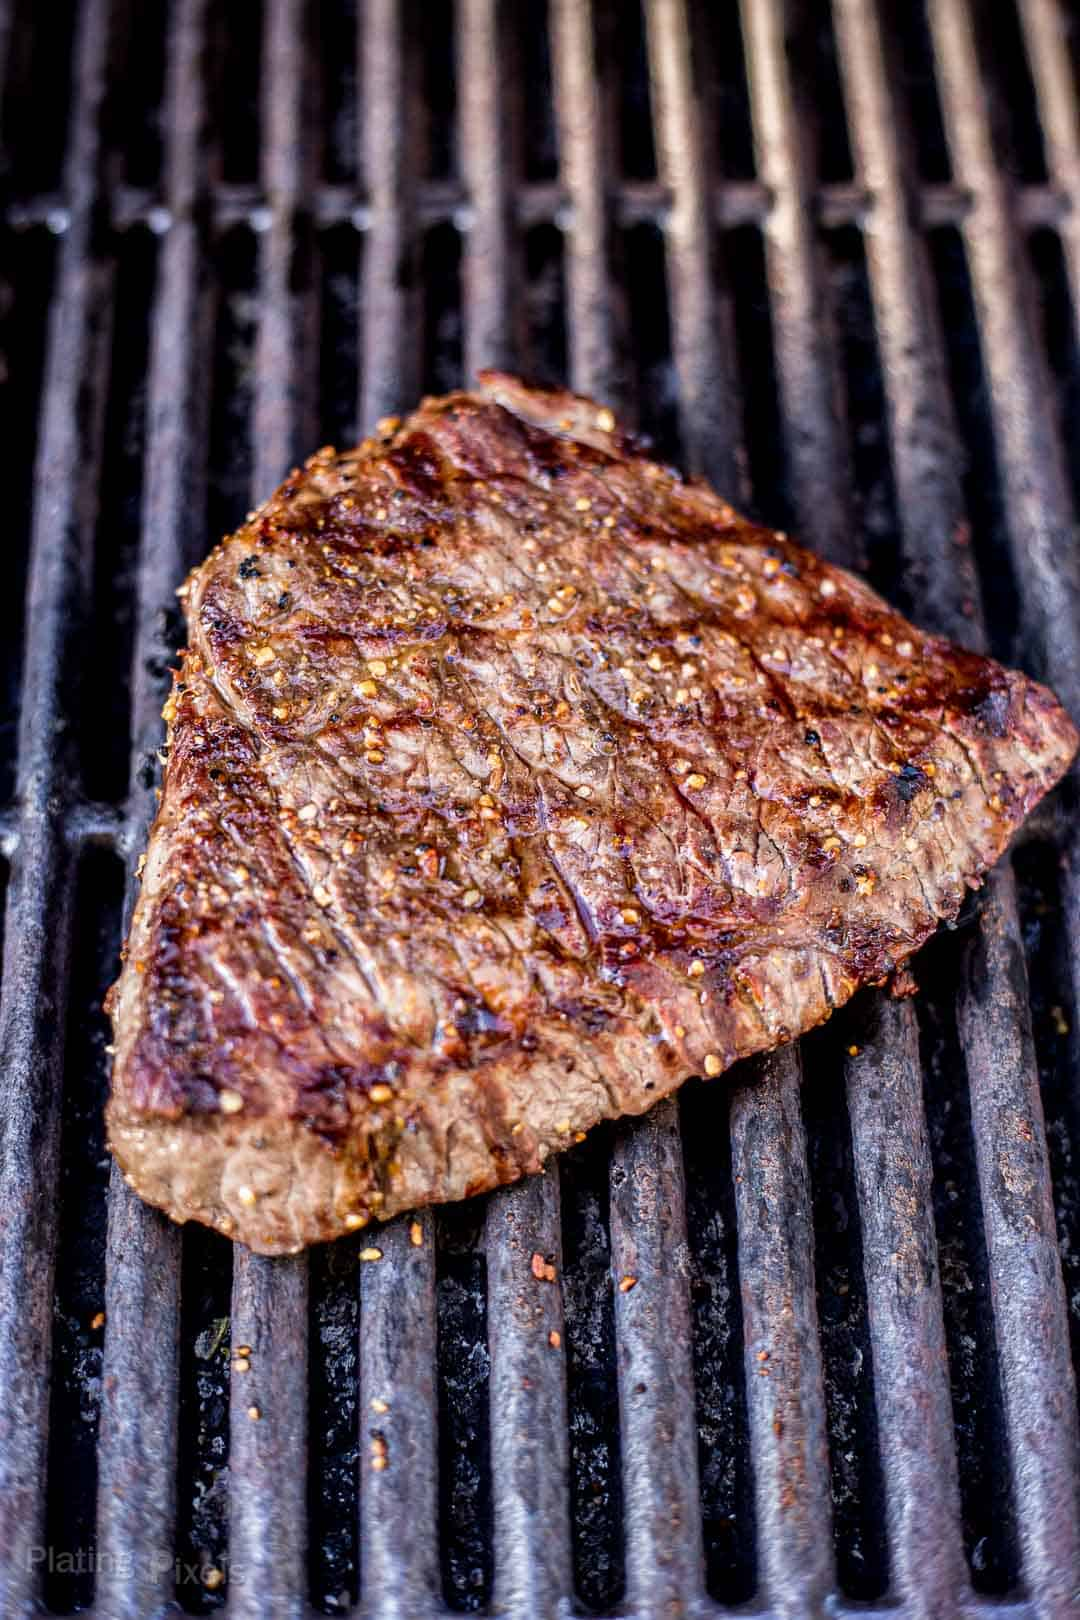 Process shot of a London Broil steak cooking on a gas grill